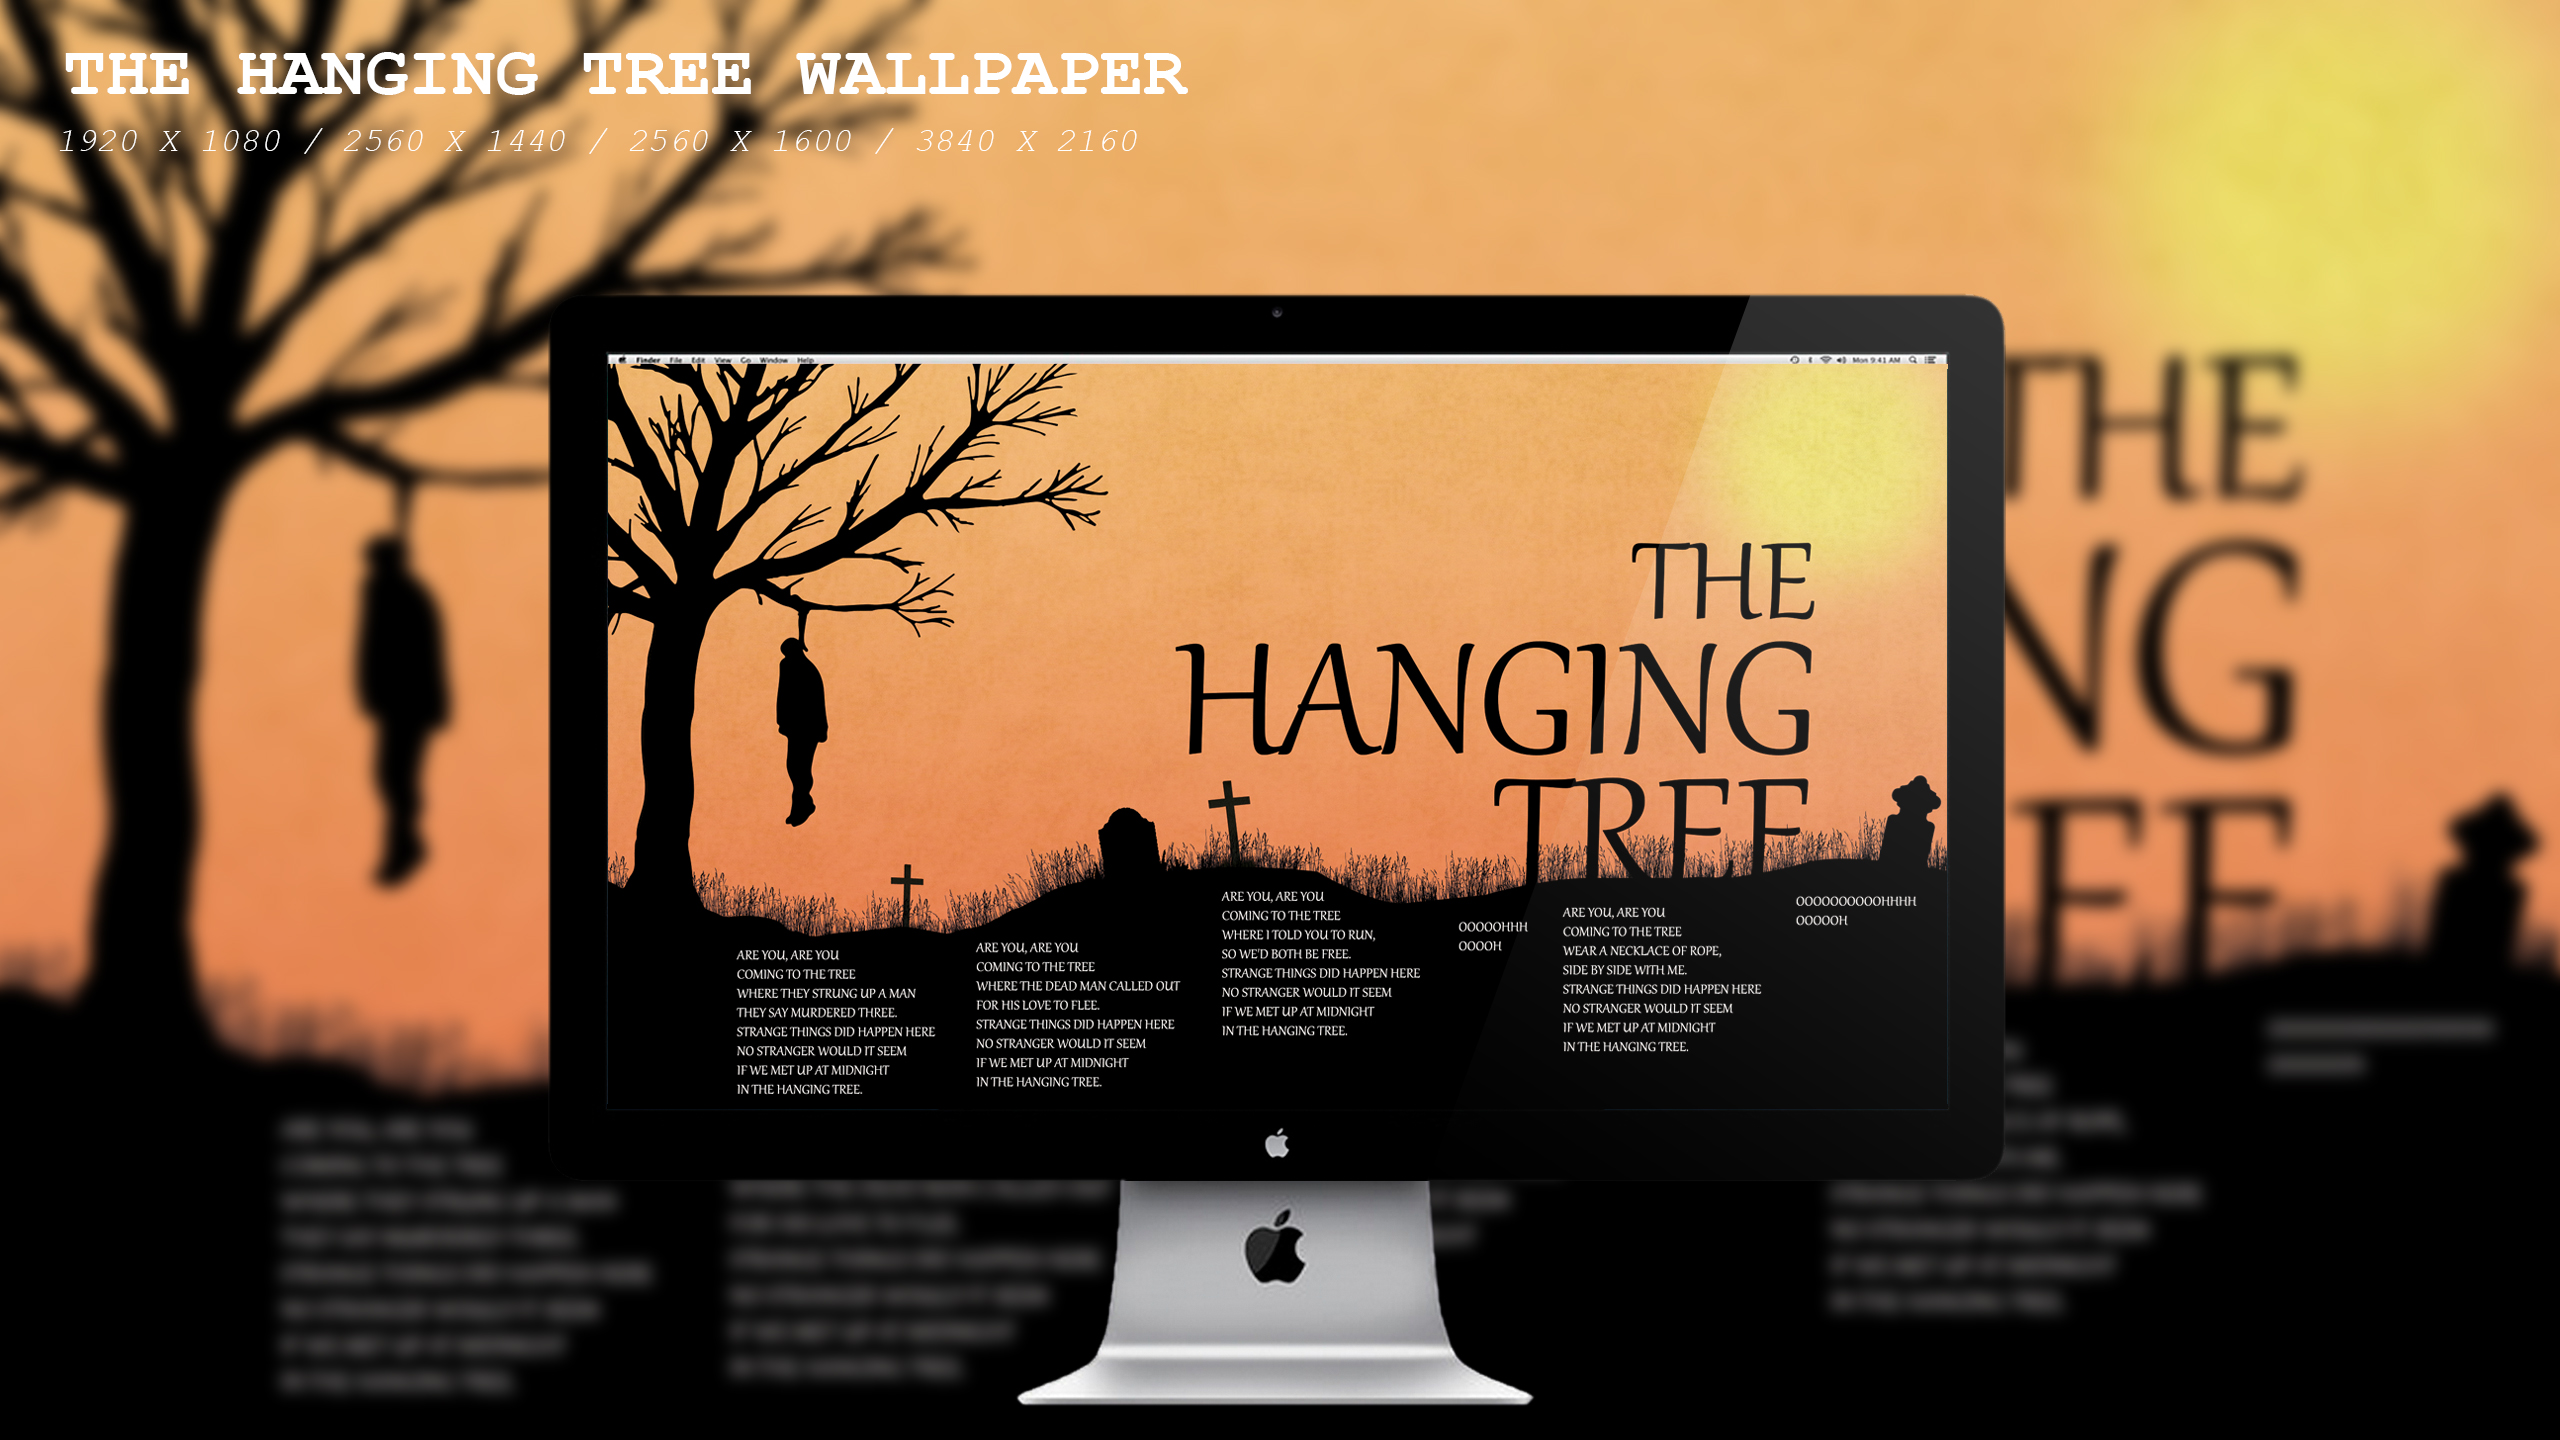 The Hanging Tree Wallpaper Hd By Beaware8 On Deviantart